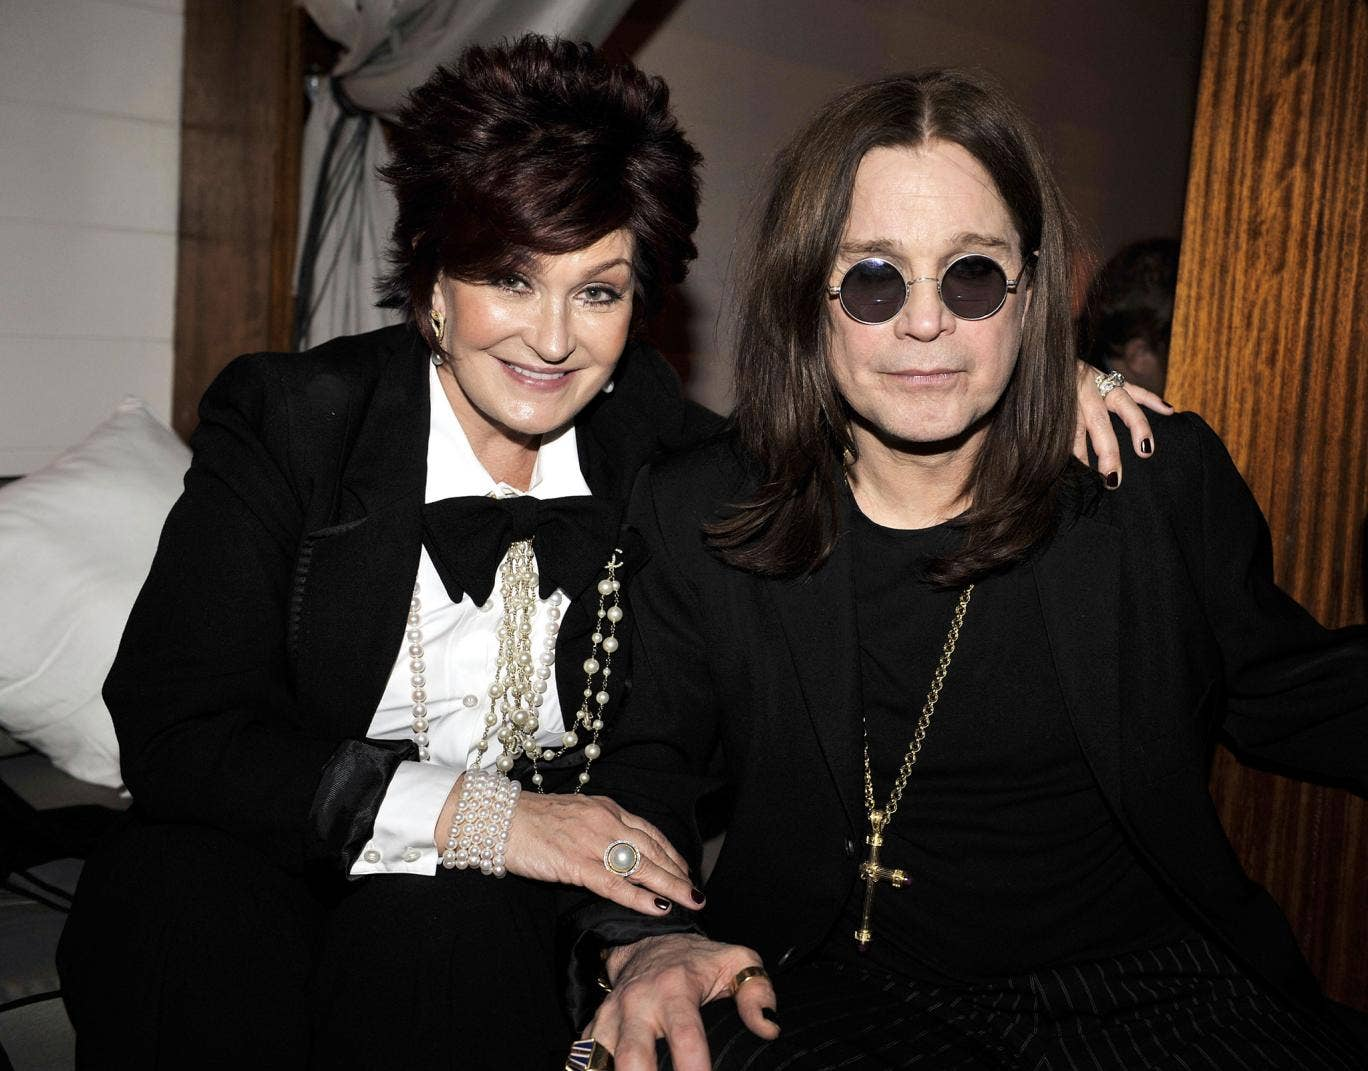 Ozzy confirms he and Sharon have not split up